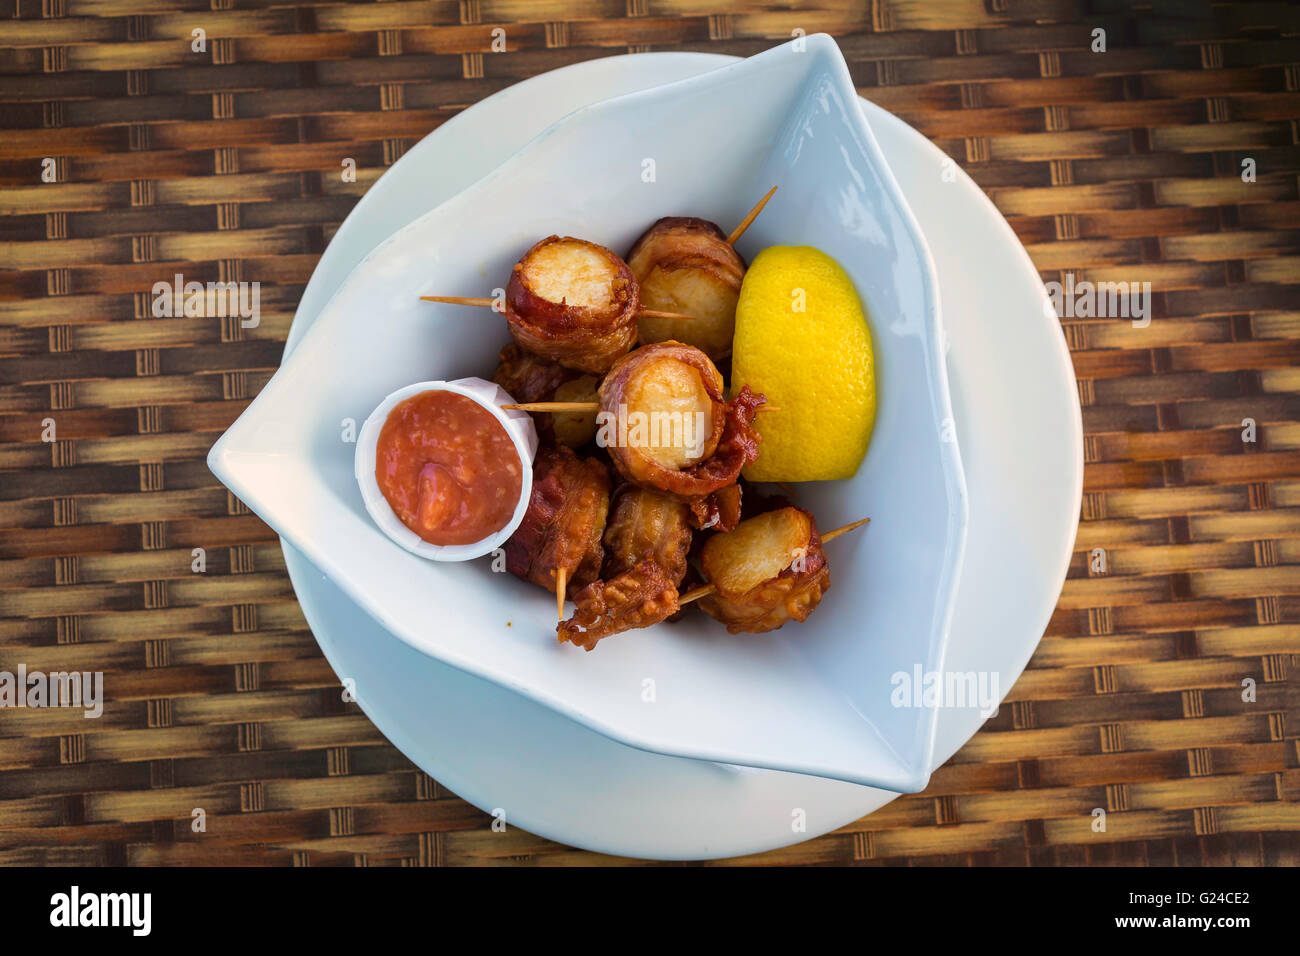 Bacon wrapped scallops with a slice of lemon and some seafood sauce in a serving dish. - Stock Image